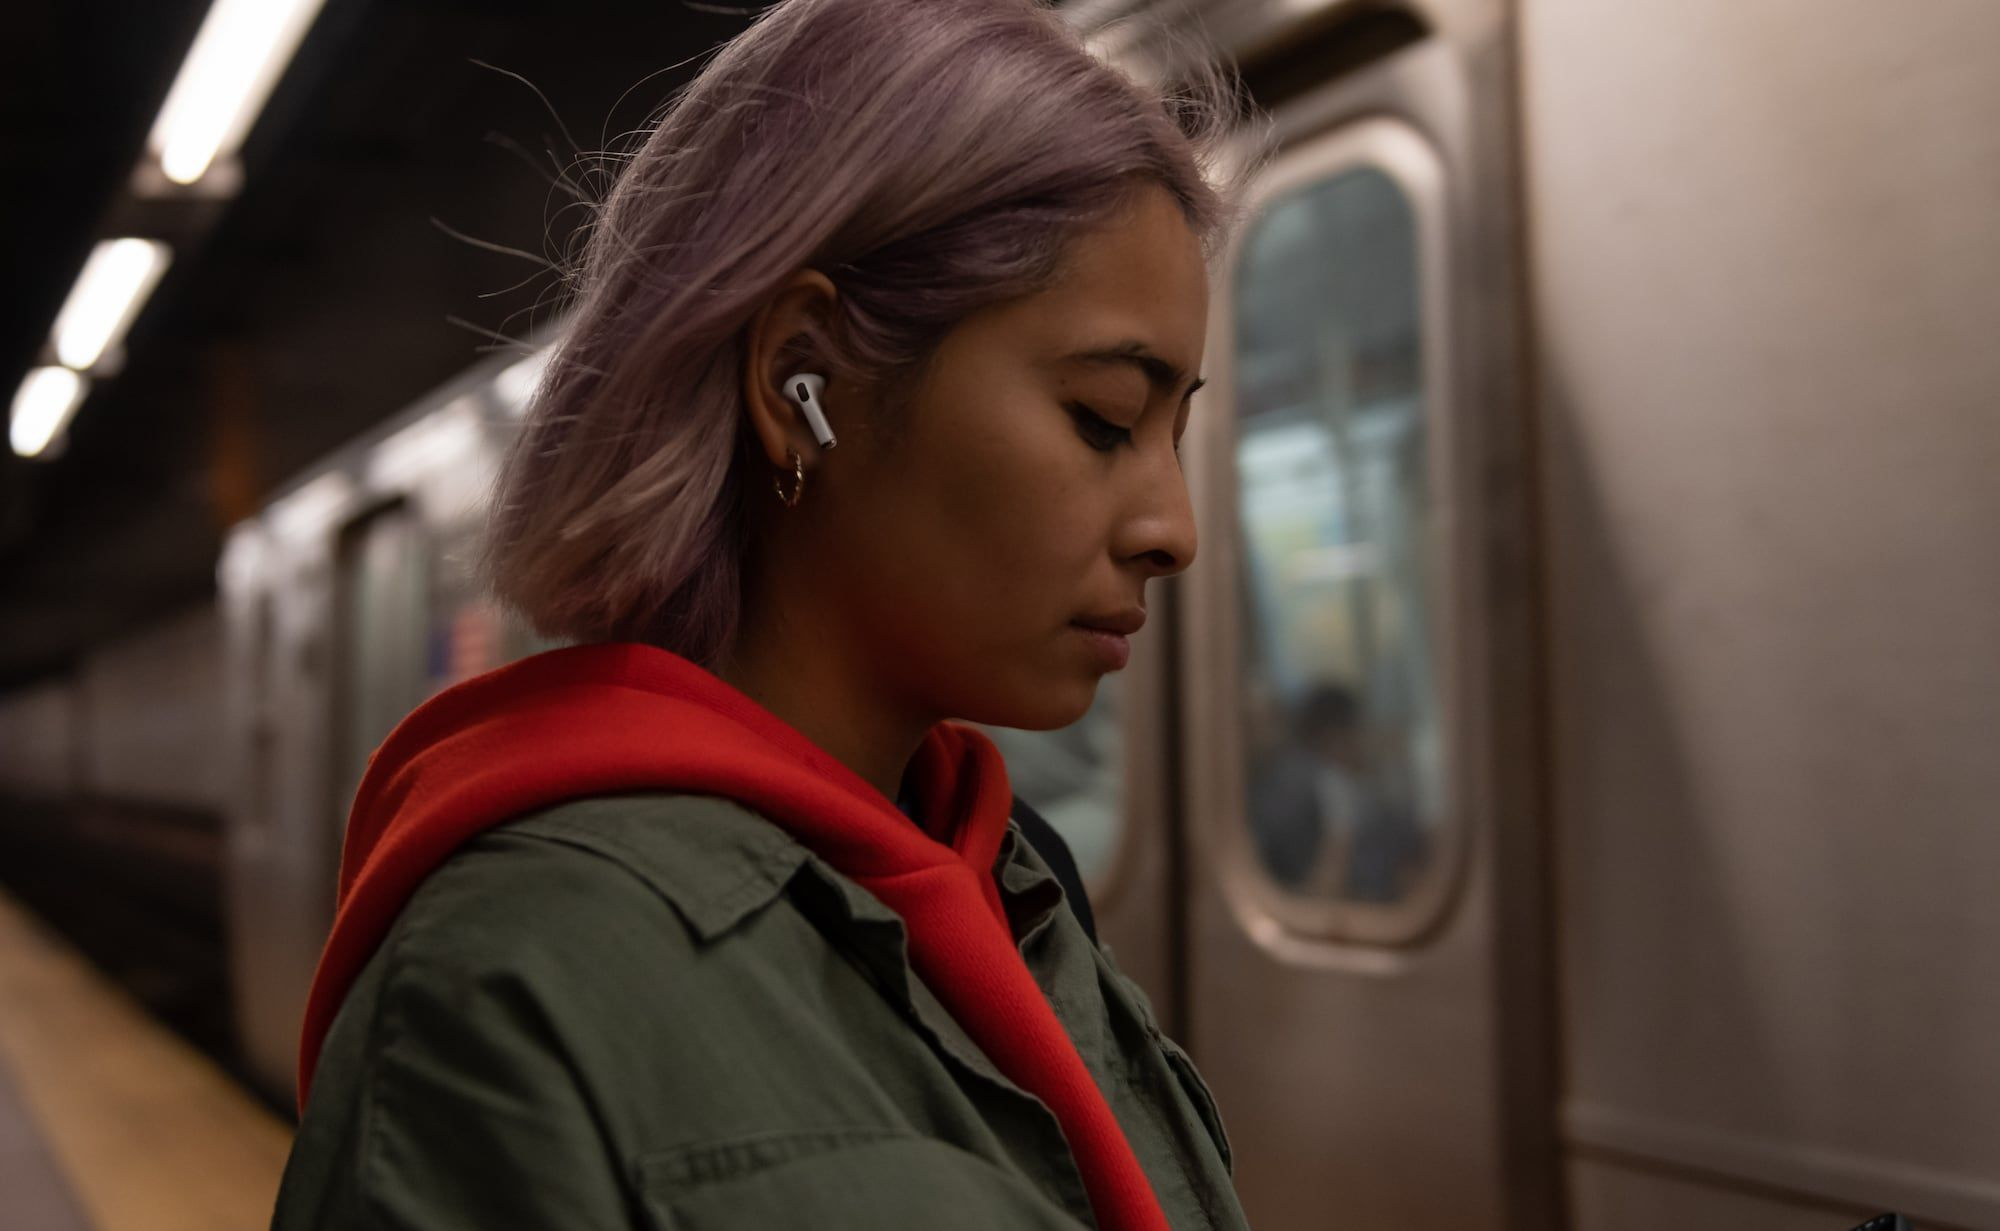 Apple Airpods Pro Immersive Earbuds Offer Dolby Atmos Spatial Audio Airpods Pro Airpod Pro Noise Cancelling